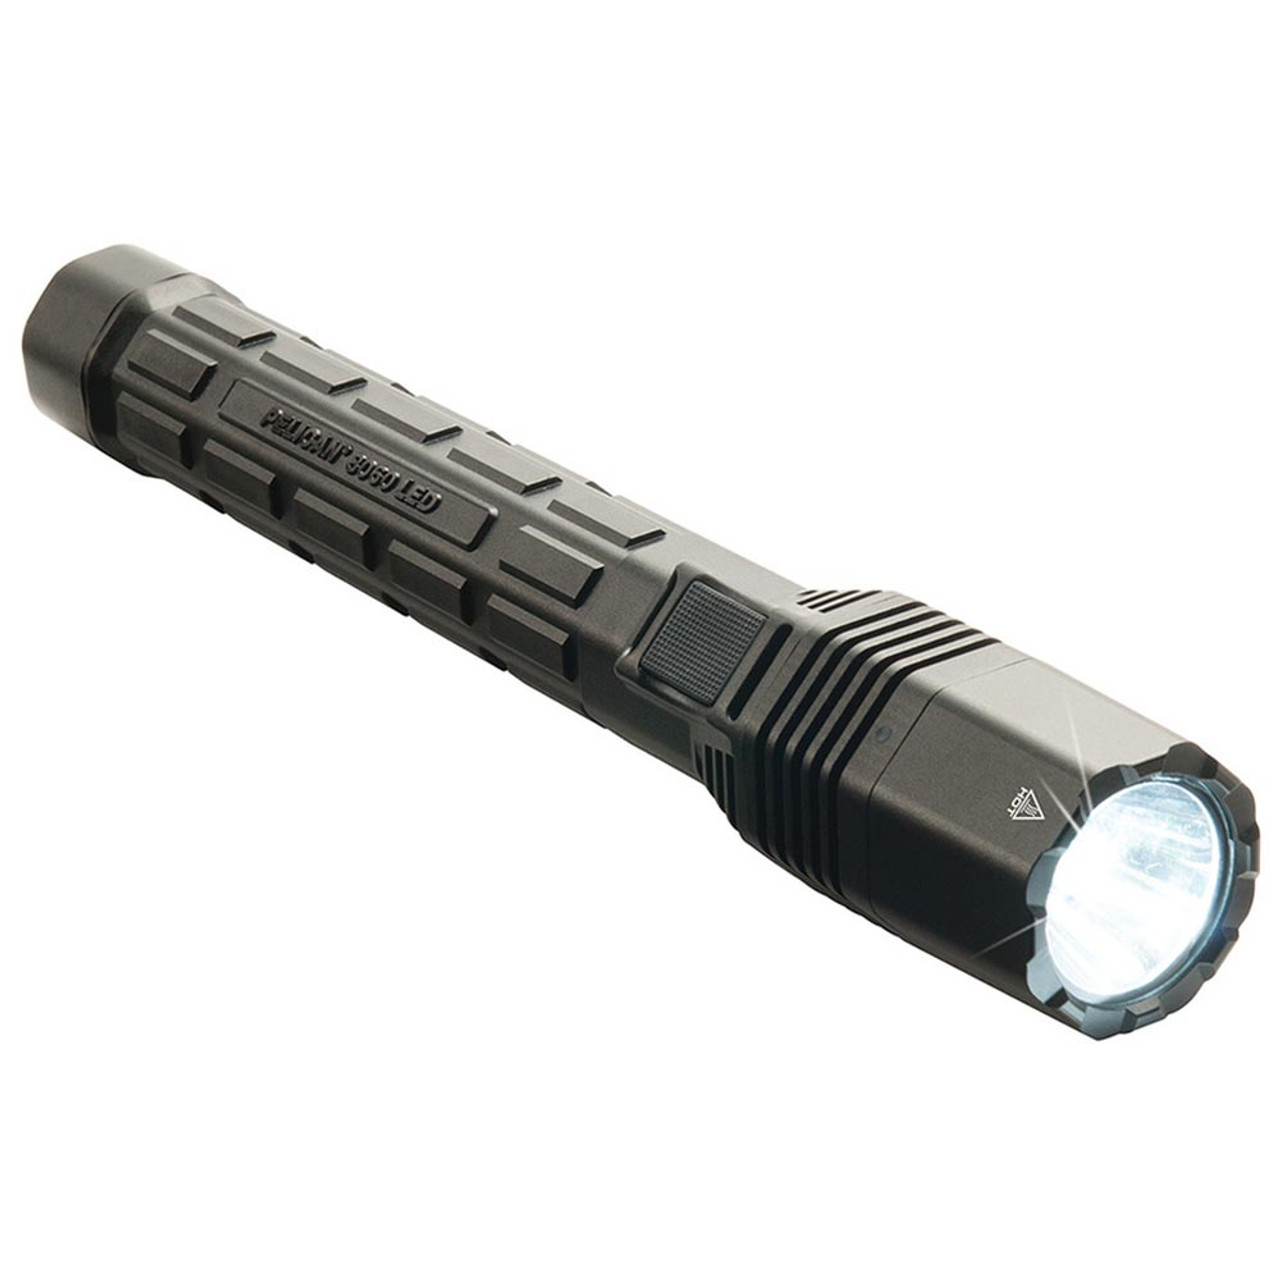 Pelican Tactical LED Flashlight, With 4 Selectable Programs, Black 8060